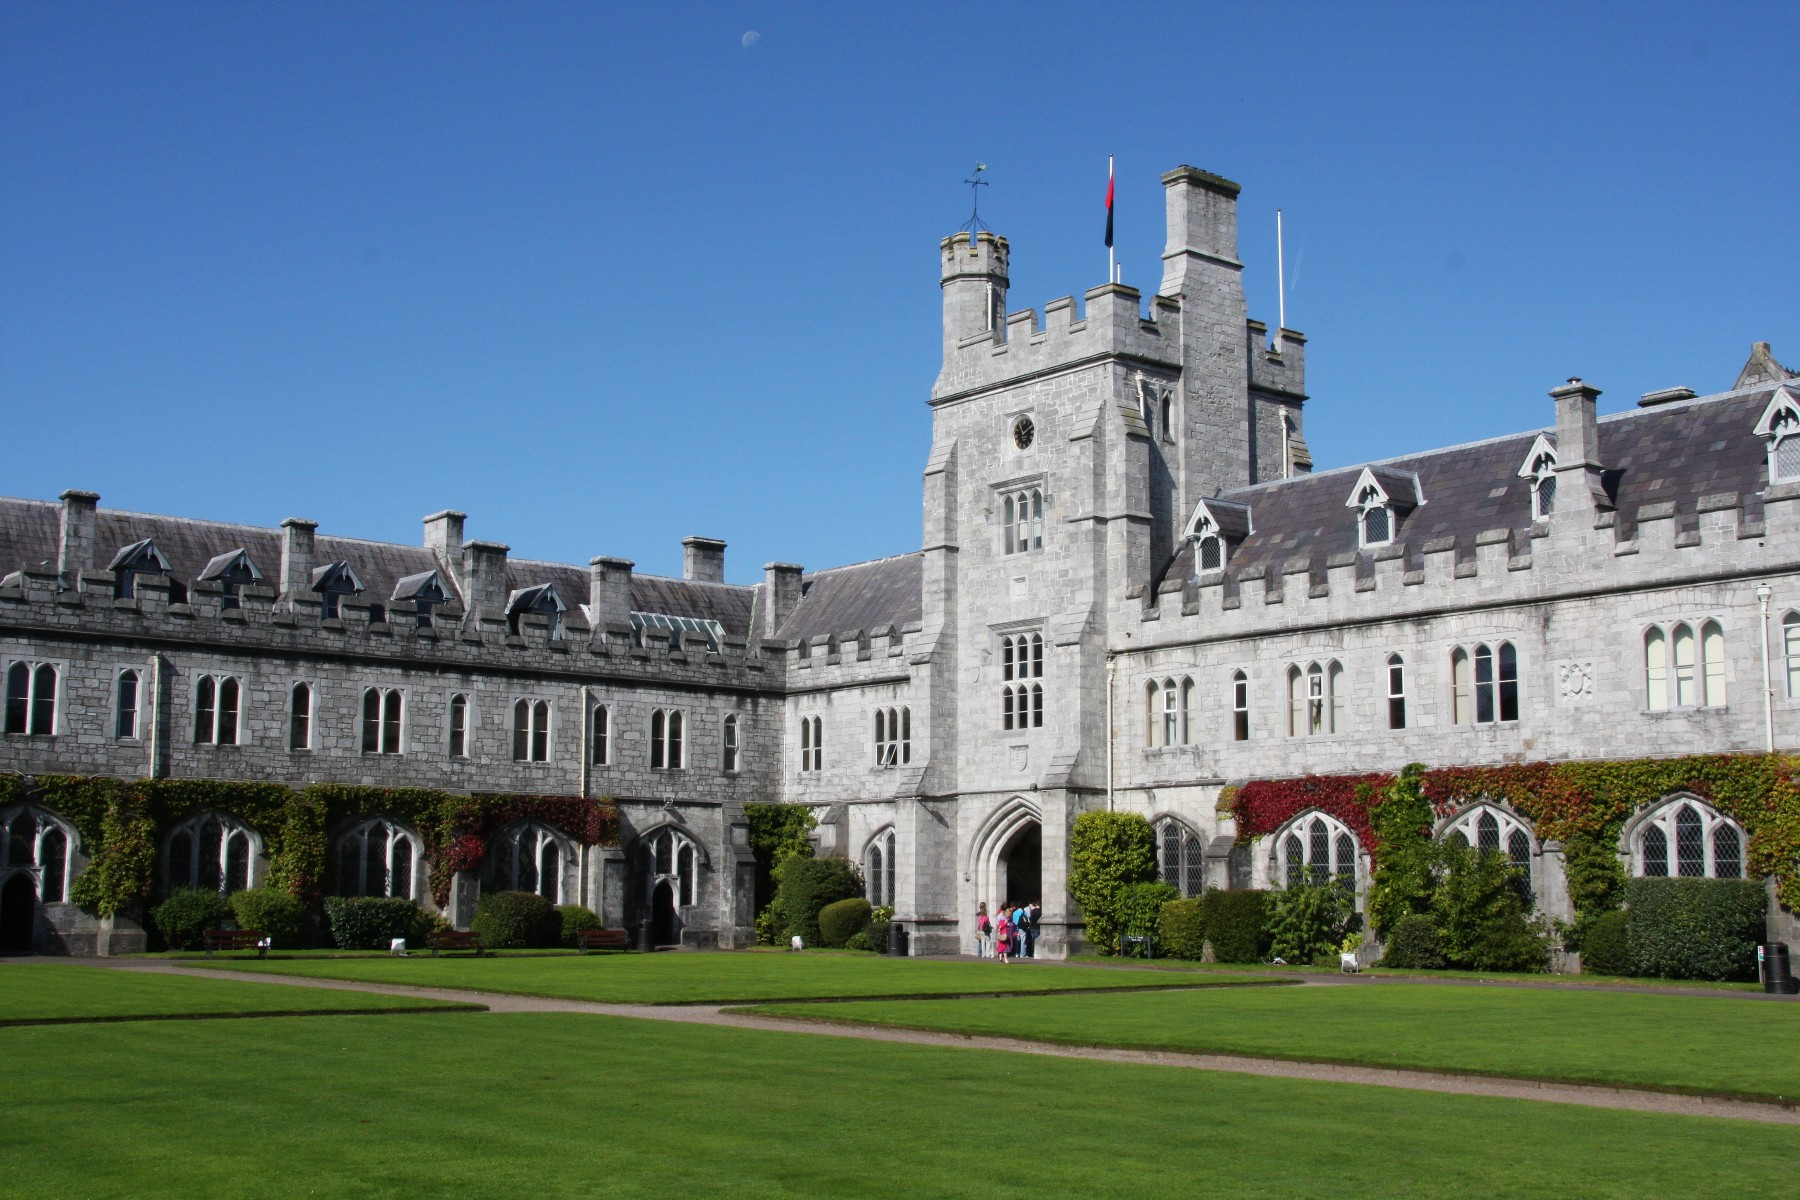 UCC. Image Source: https://uccexpress.ie/